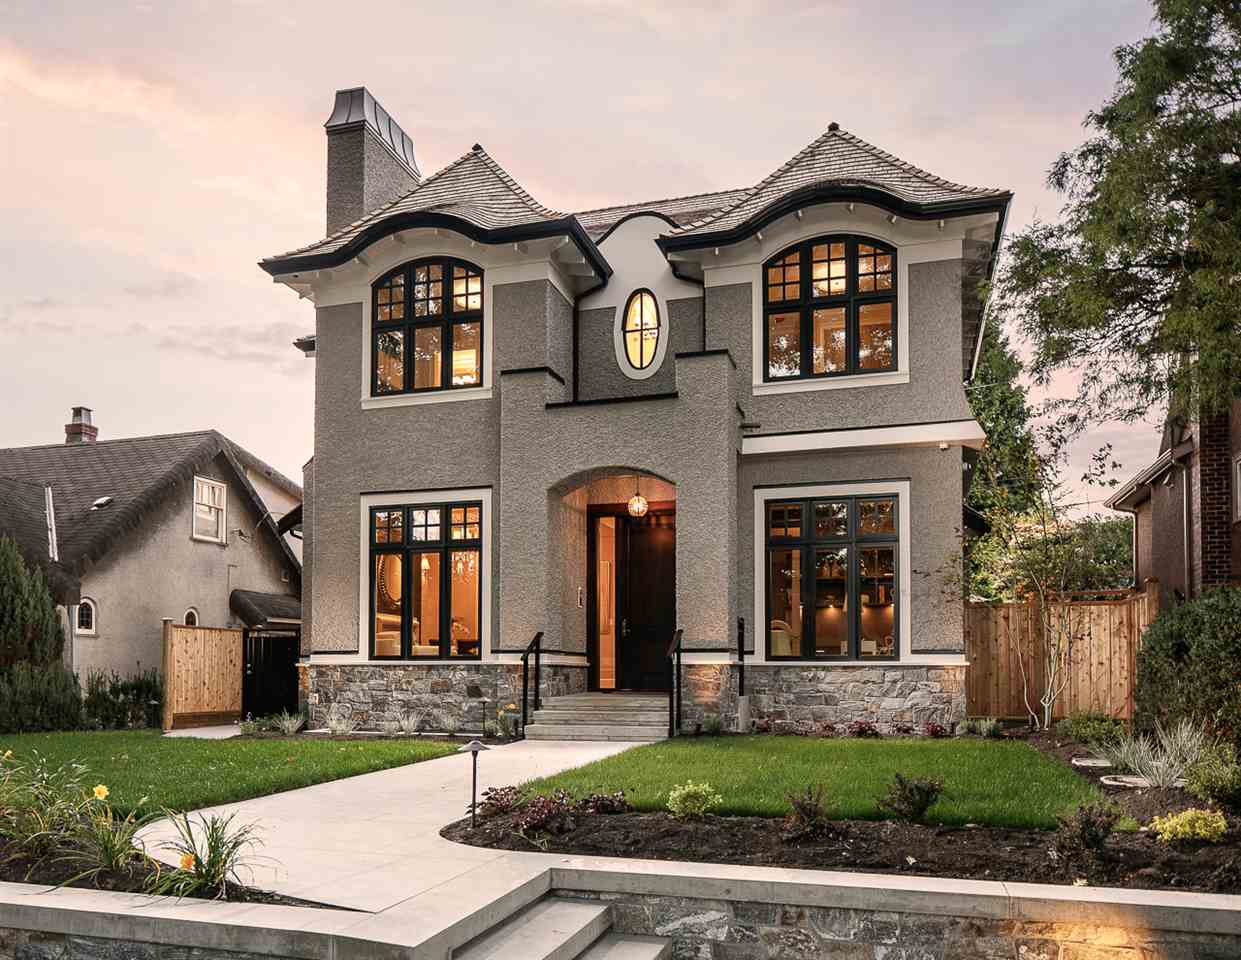 Gorgeous NEW European built MacKenzie Heights contemporary home.   Five BRs, office, rec-rm, familyrm & 7 bathrms.  Soaring 11' ceilings (on the Main) and 10' (down), hardwood floors, A/C, triple garage & fully finished bsmt. Beautiful gourmet kitchen w/ ceiling ht. cabinets, spacious island w/waterfall marble slab counter & prep sink.  Sunny Wok Kitchen with high power fan and plenty of storage.  All your favorite appliances - Wolfe, Sub Zero & Miele.   Close to Balaclava Park, MacKenzie Village shops and transportation to downtown, Airport and UBC.   This is truly a unique home with quality finishing/materials throughout and also includes a 2-5-10 Warranty